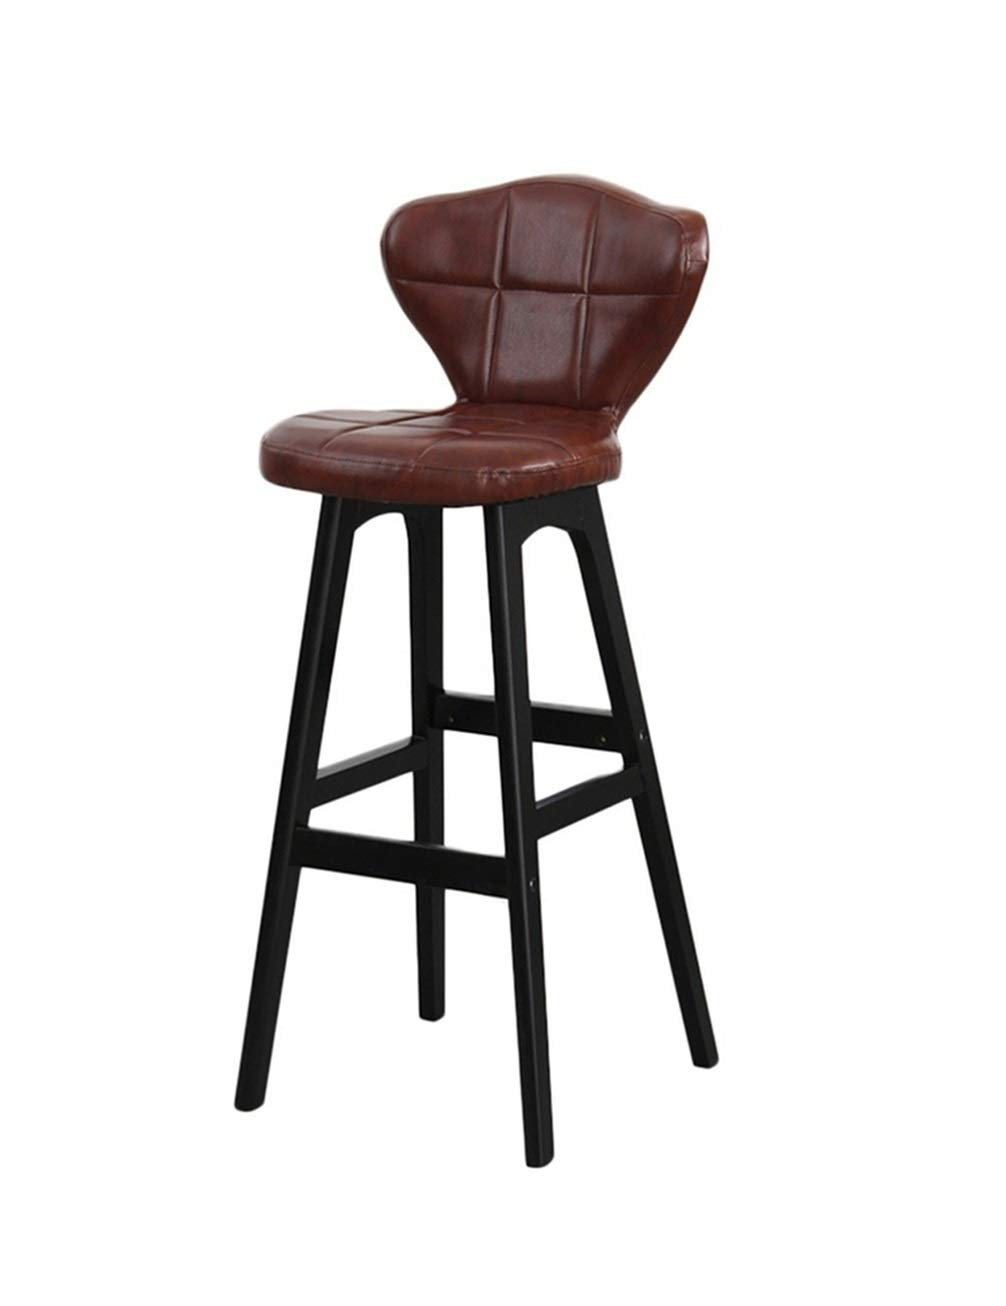 Wpjpzwj777 Kitchen Counter Bar Stool, A Variety of Styles Available, Pu Leather Seats Soft and Comfortable, Suitable for Families, Outdoor, Beauty Salons, Cafes, Bars and So On. (Color : 5) by Wpjpzwj777